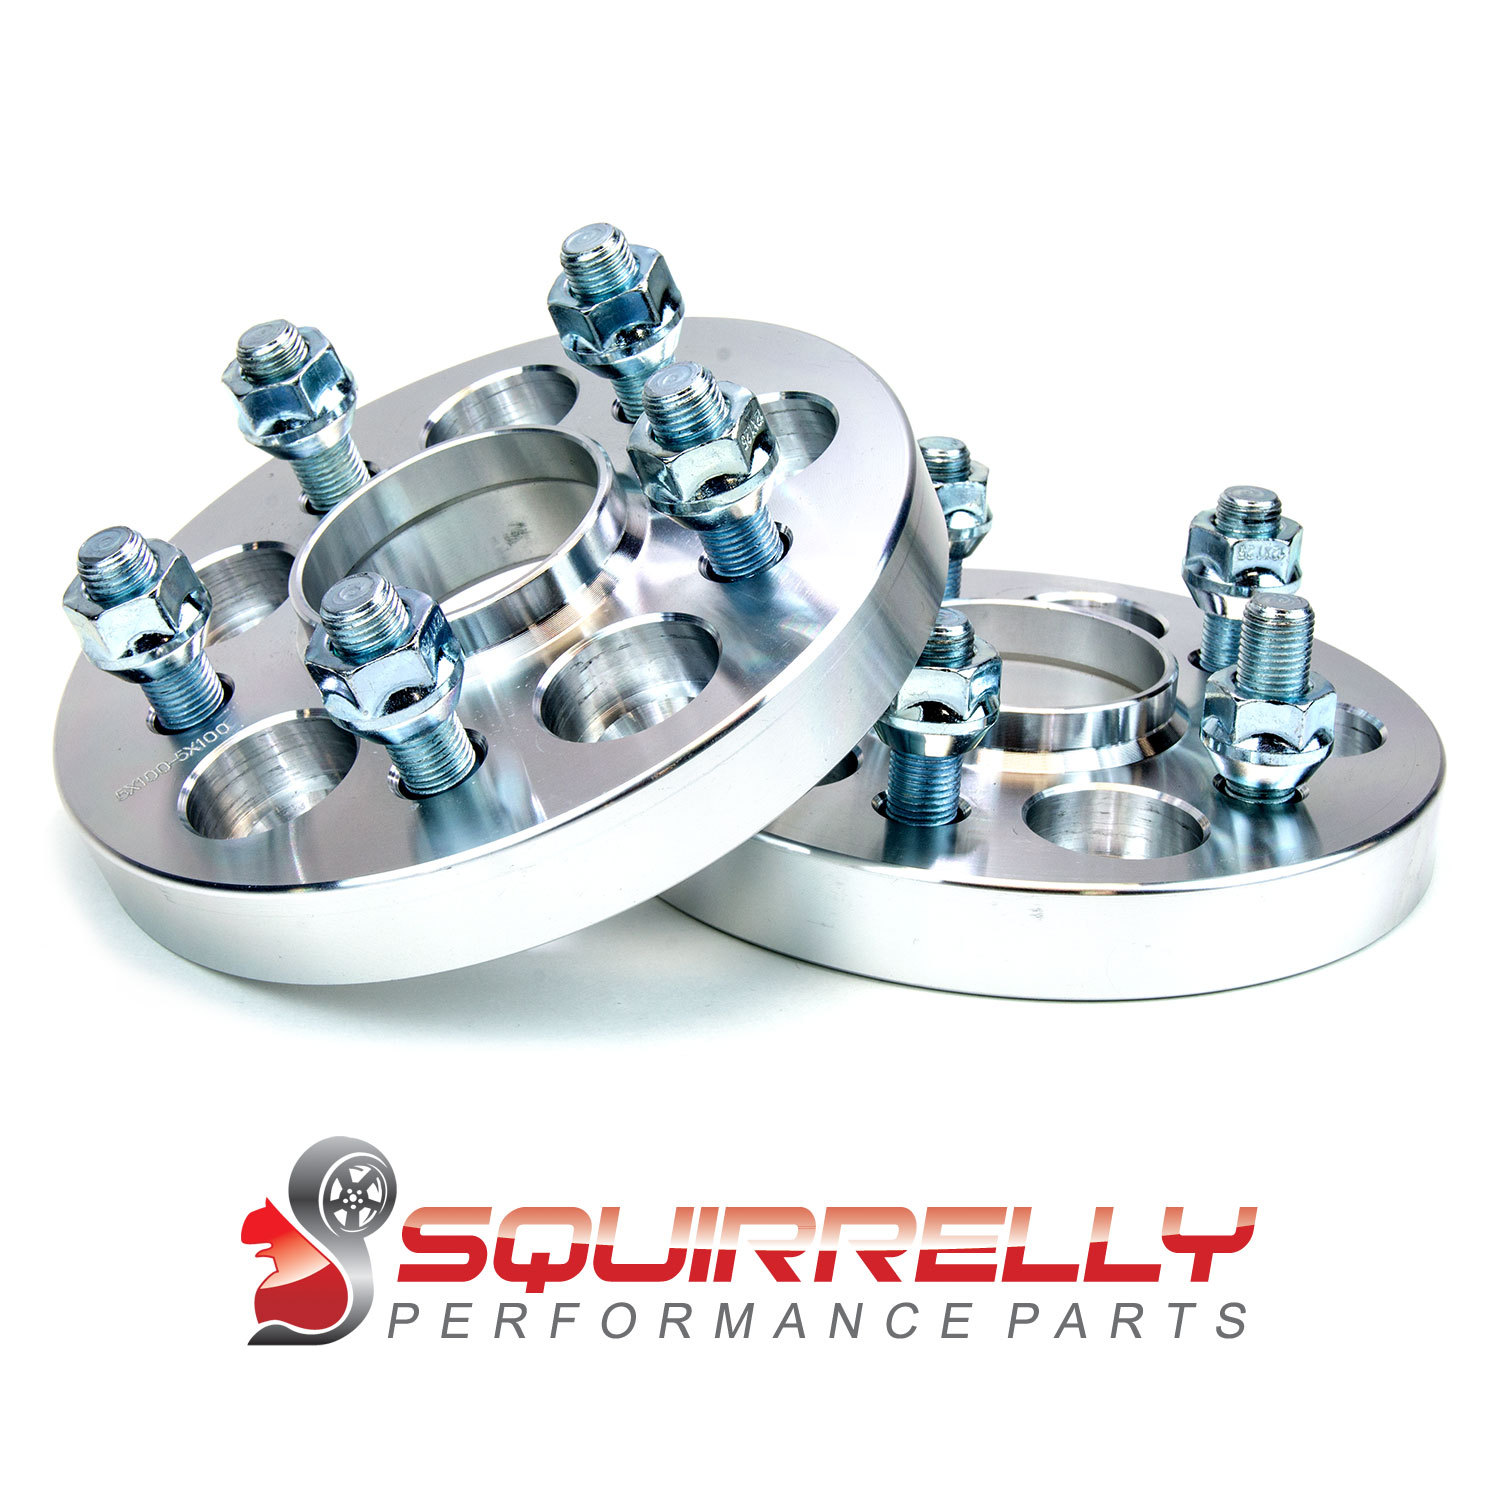 2x Squirrelly Hubcentric Wheel Spacers Adapters | 5x100 | 12x1.25 | 56.1 | 20mm